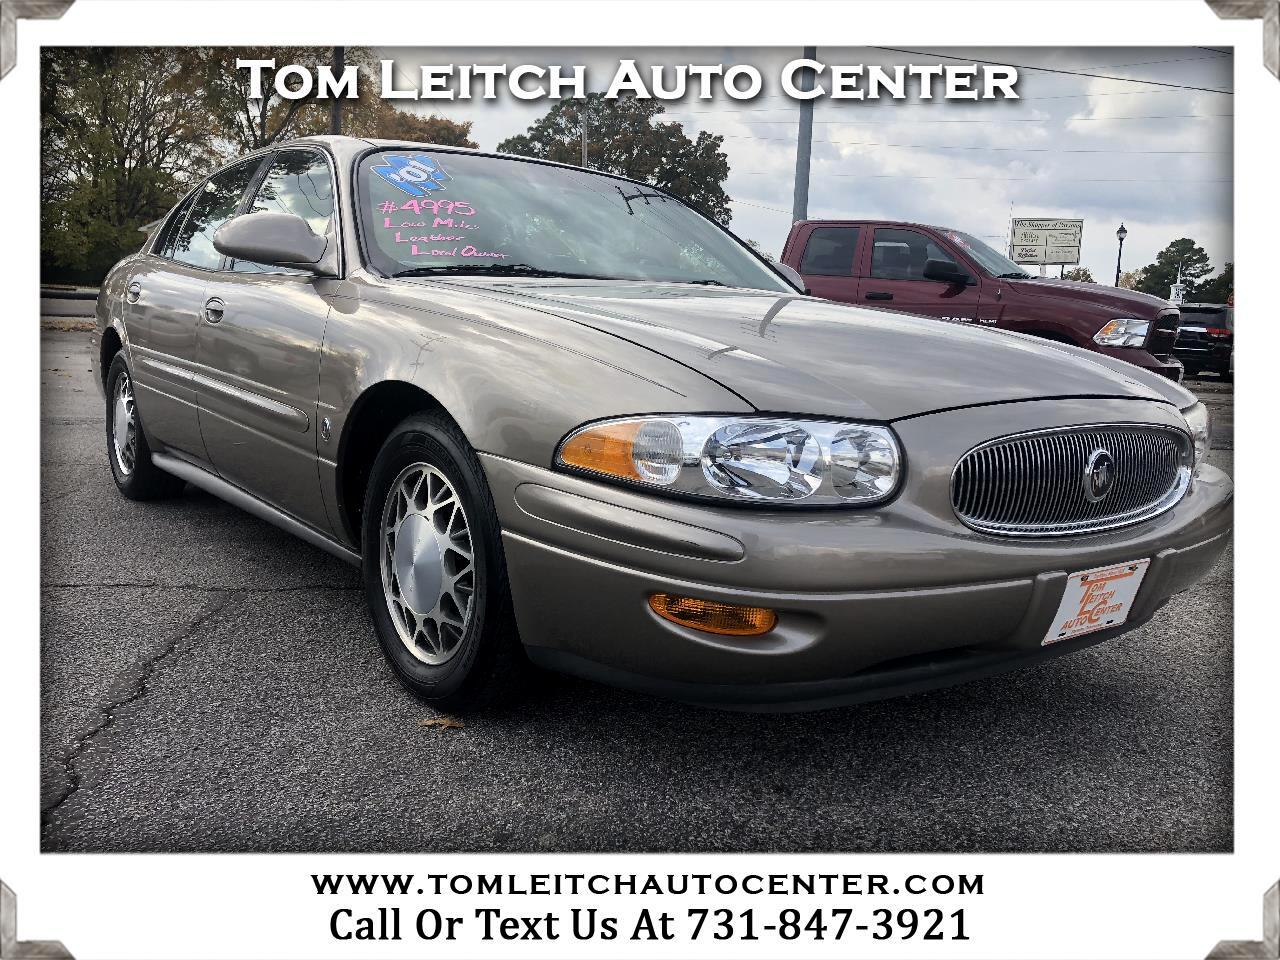 2001 Buick LeSabre 4dr Sdn Limited